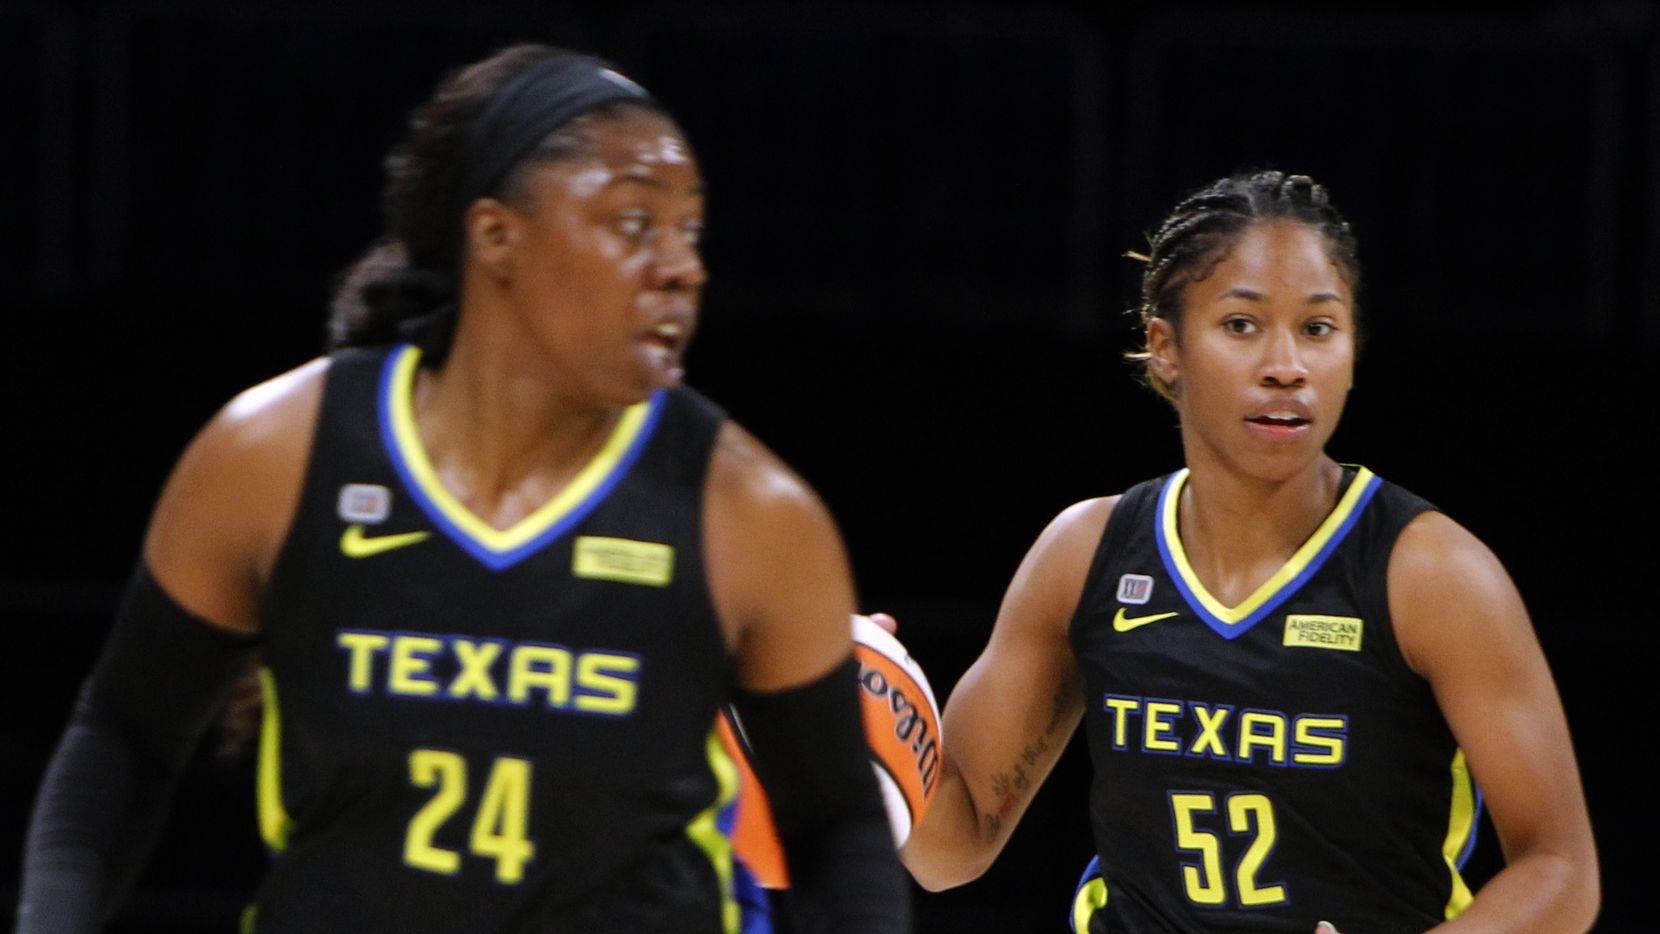 Dallas Wings guard Tyasha Gray (52), right, brings the ball up-court behind guard Arike Ogunbowale (24) during first half action against the Atlanta Dream. Dallas lost to Atlanta 69-64. The two teams played their WNBA game at College Park Center on the campus of UT-Arlington on September 5, 2021.